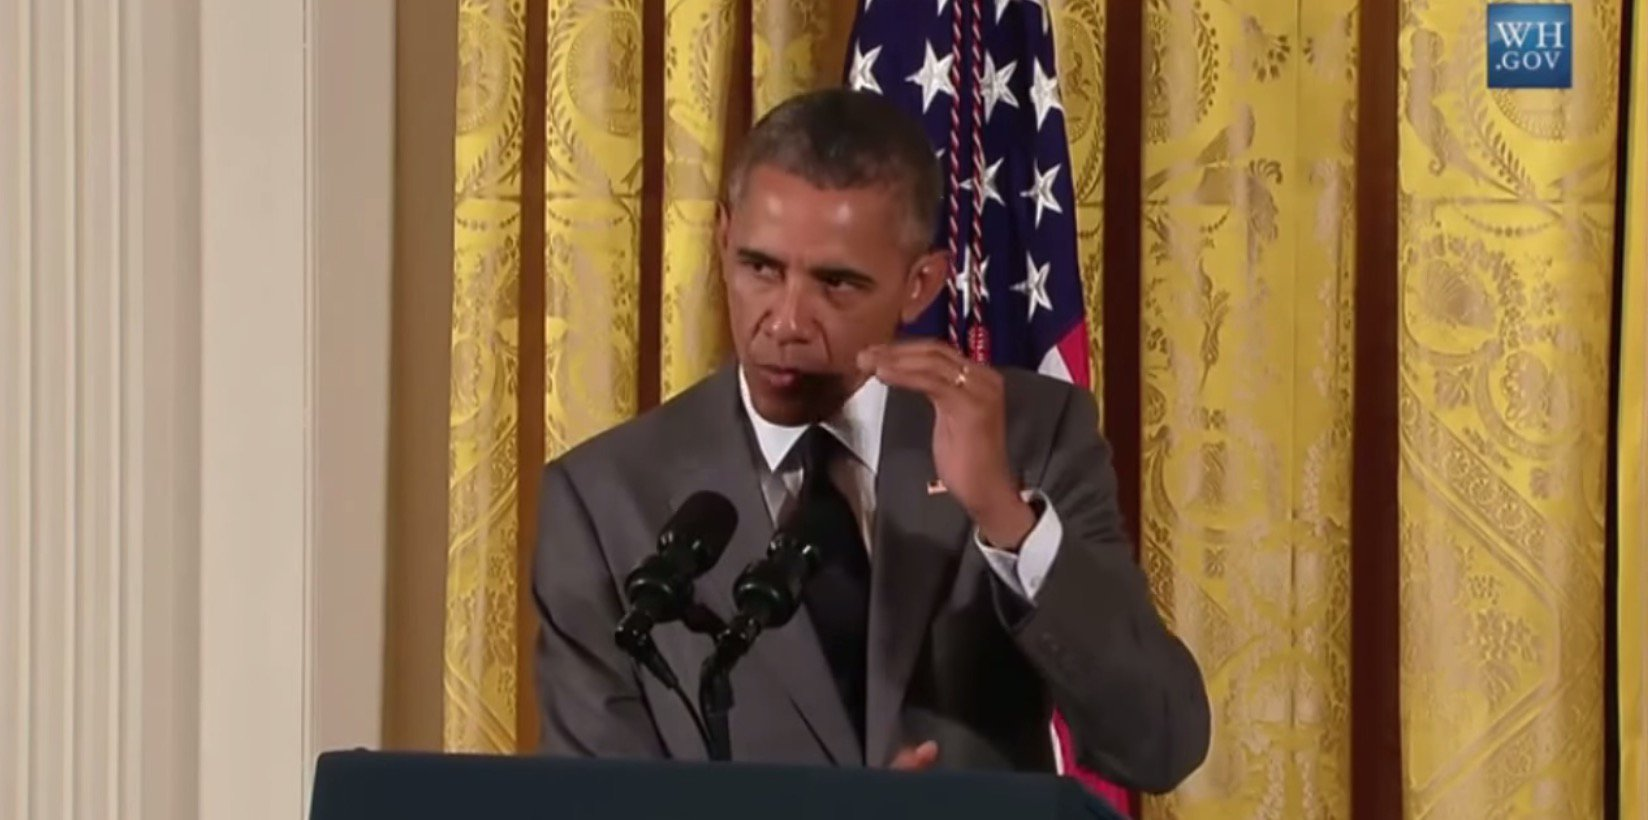 President Obama: Under My Leadership, US Once Again Most Respected ...